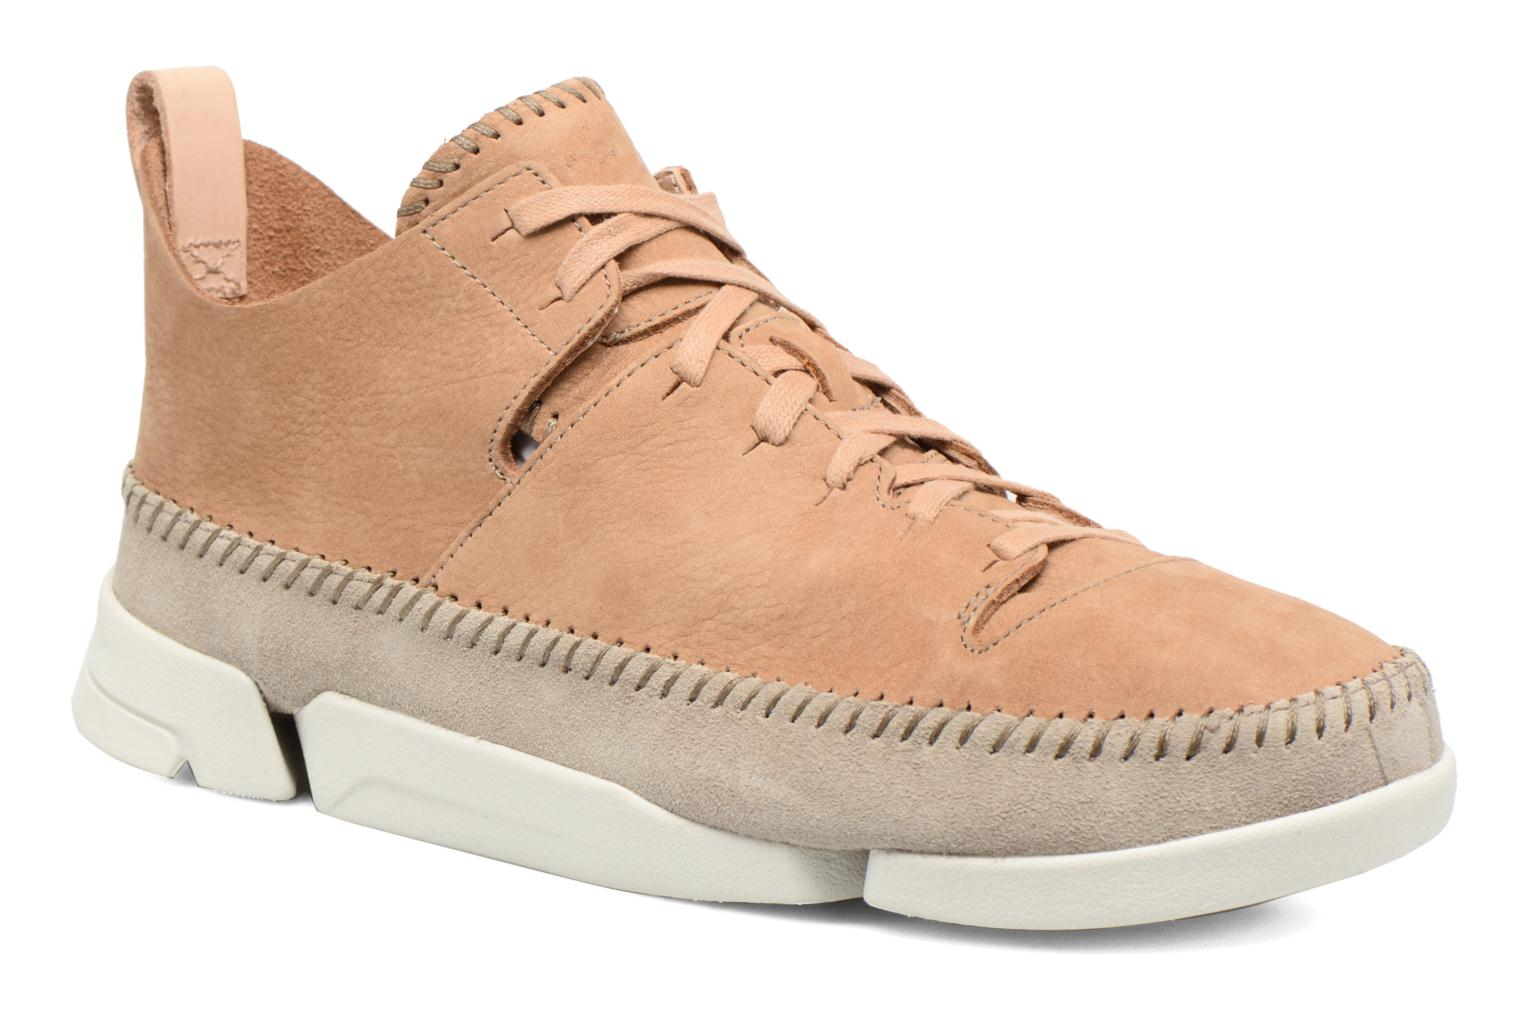 Baskets Clarks Originals Trigenic Flex M Marron vue détail/paire